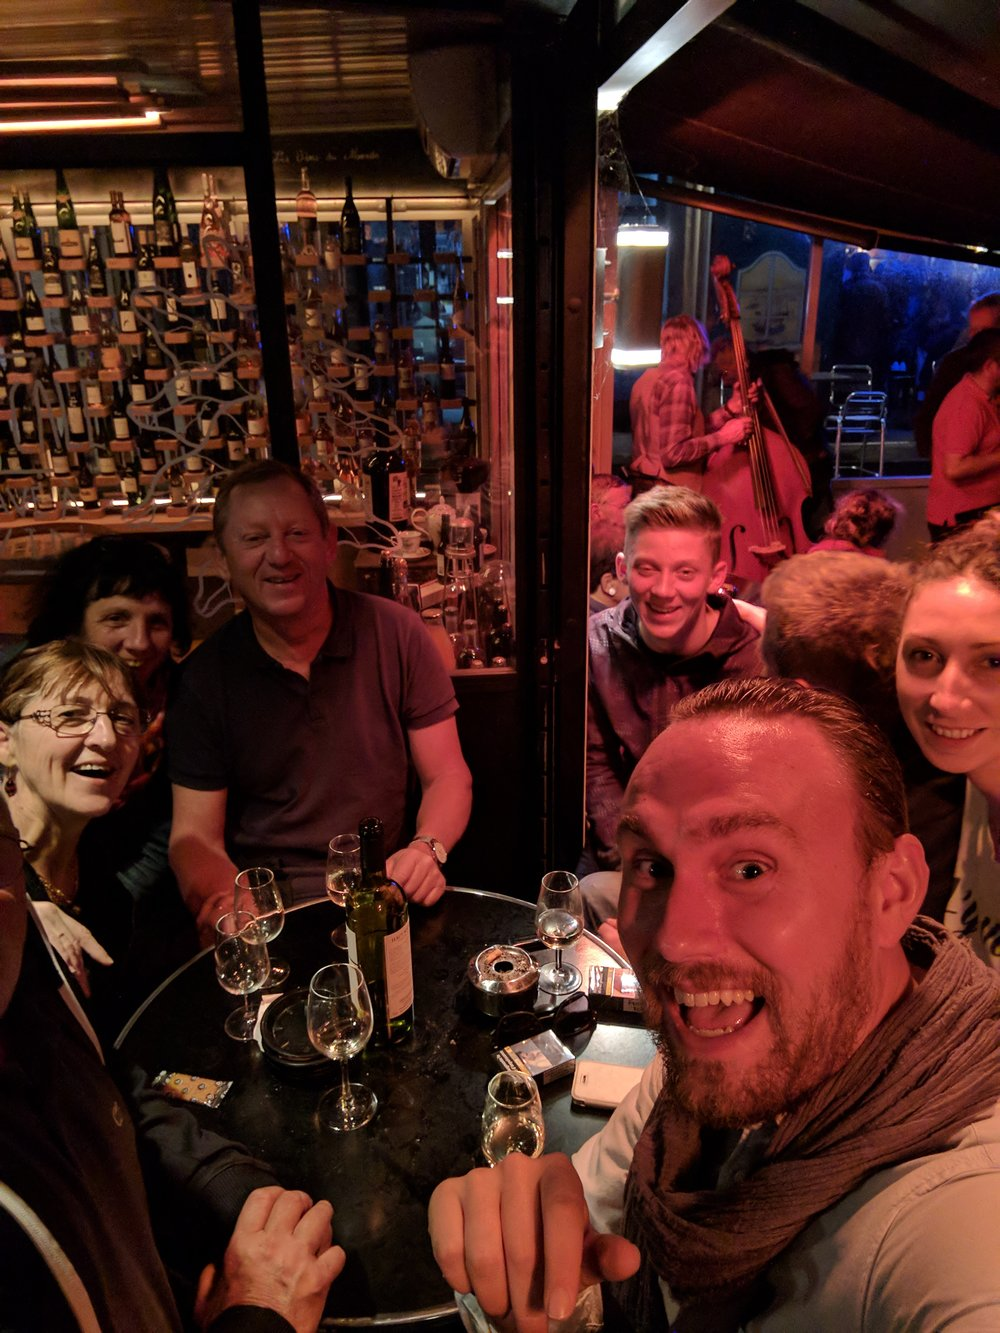 Night out with the airbnb hosts